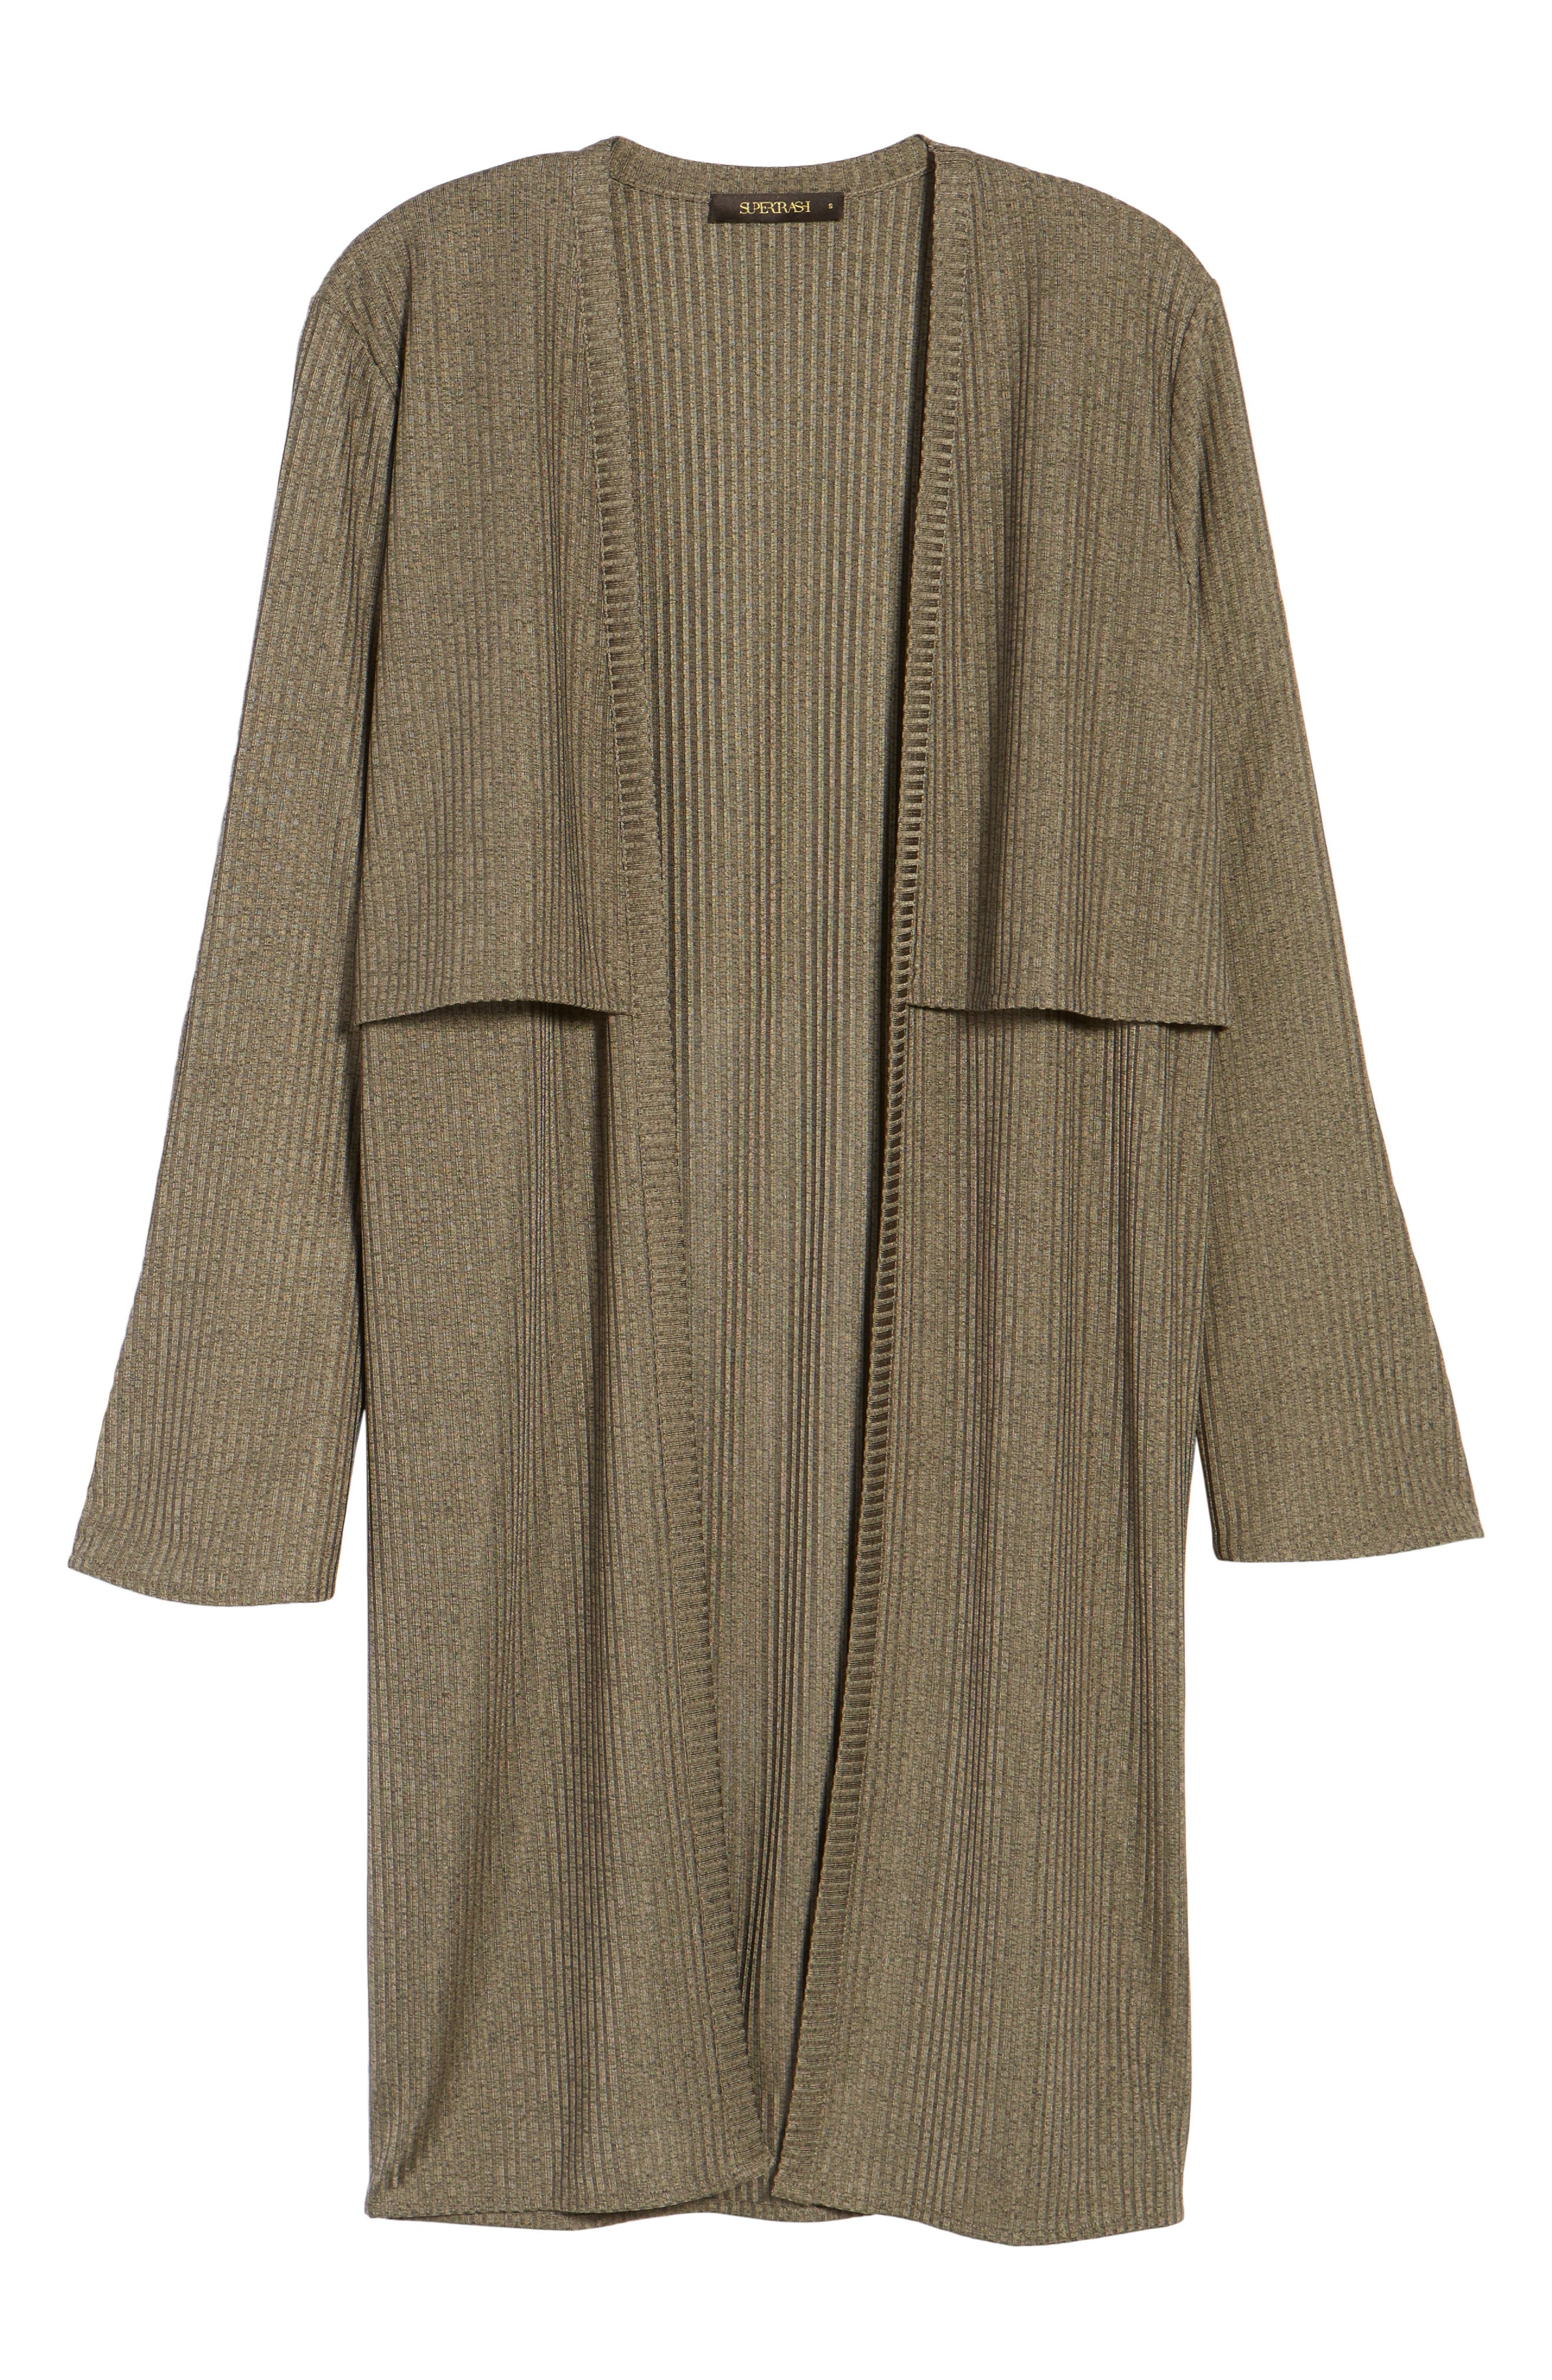 Casey Open Front Cardigan,                             Alternate thumbnail 6, color,                             Deep Army Melange